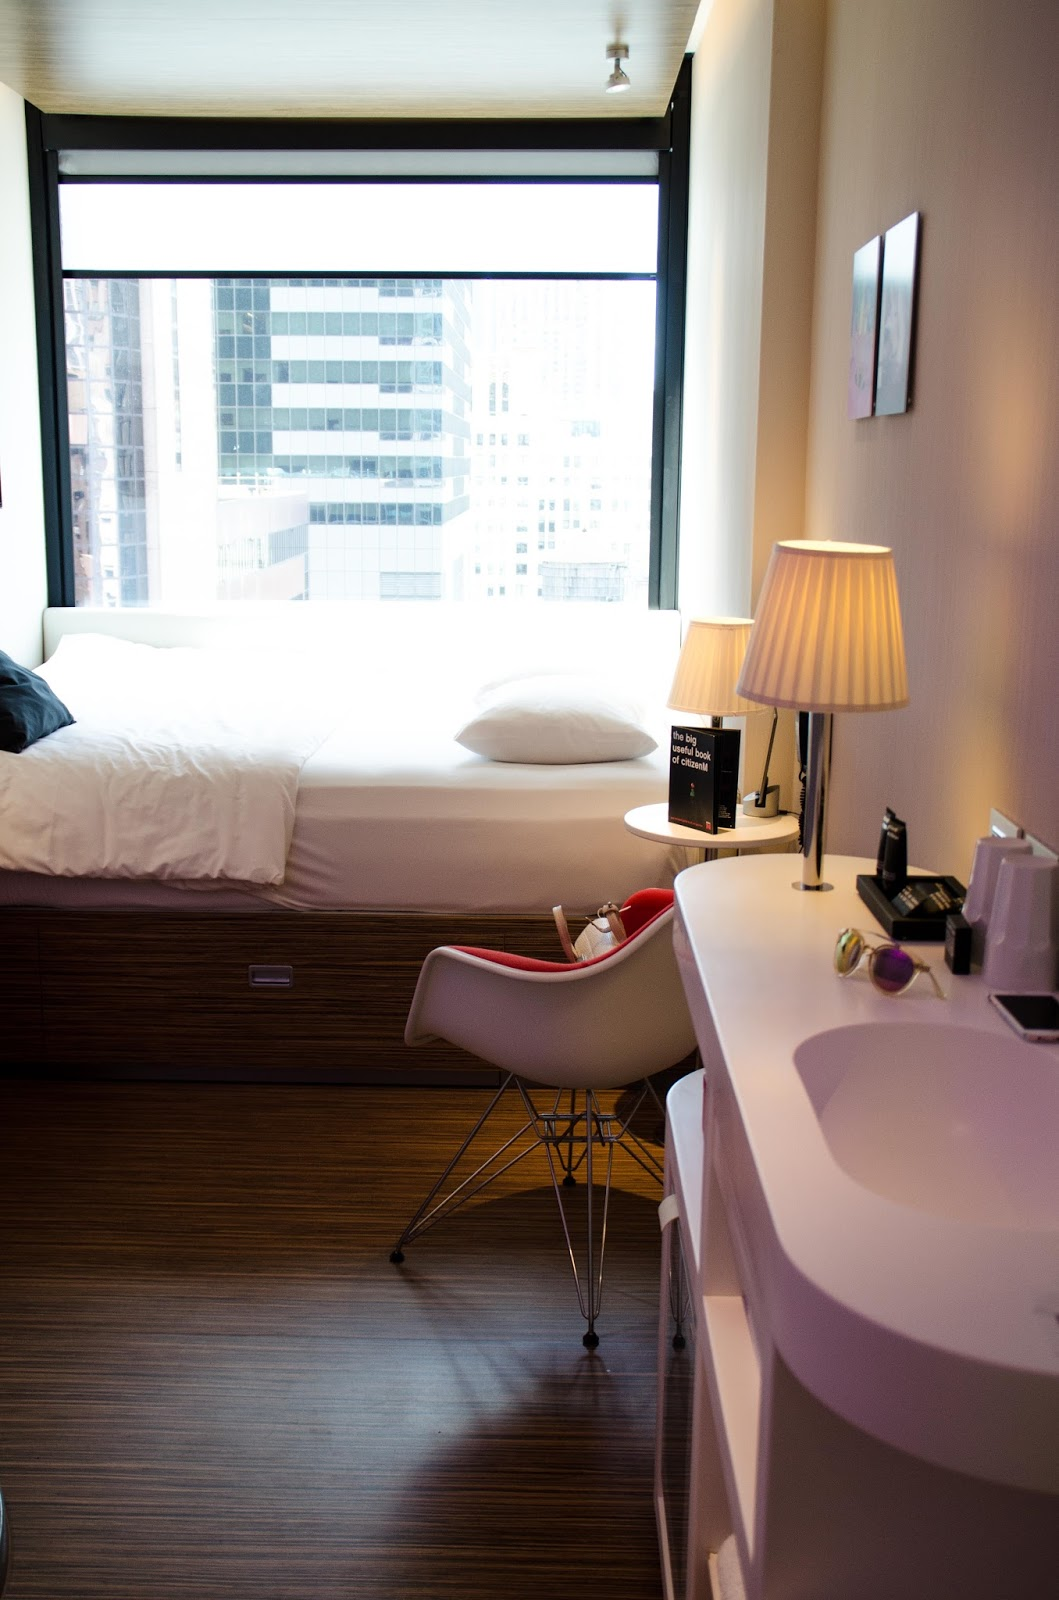 citizenm new york times square hotel room 15th floor